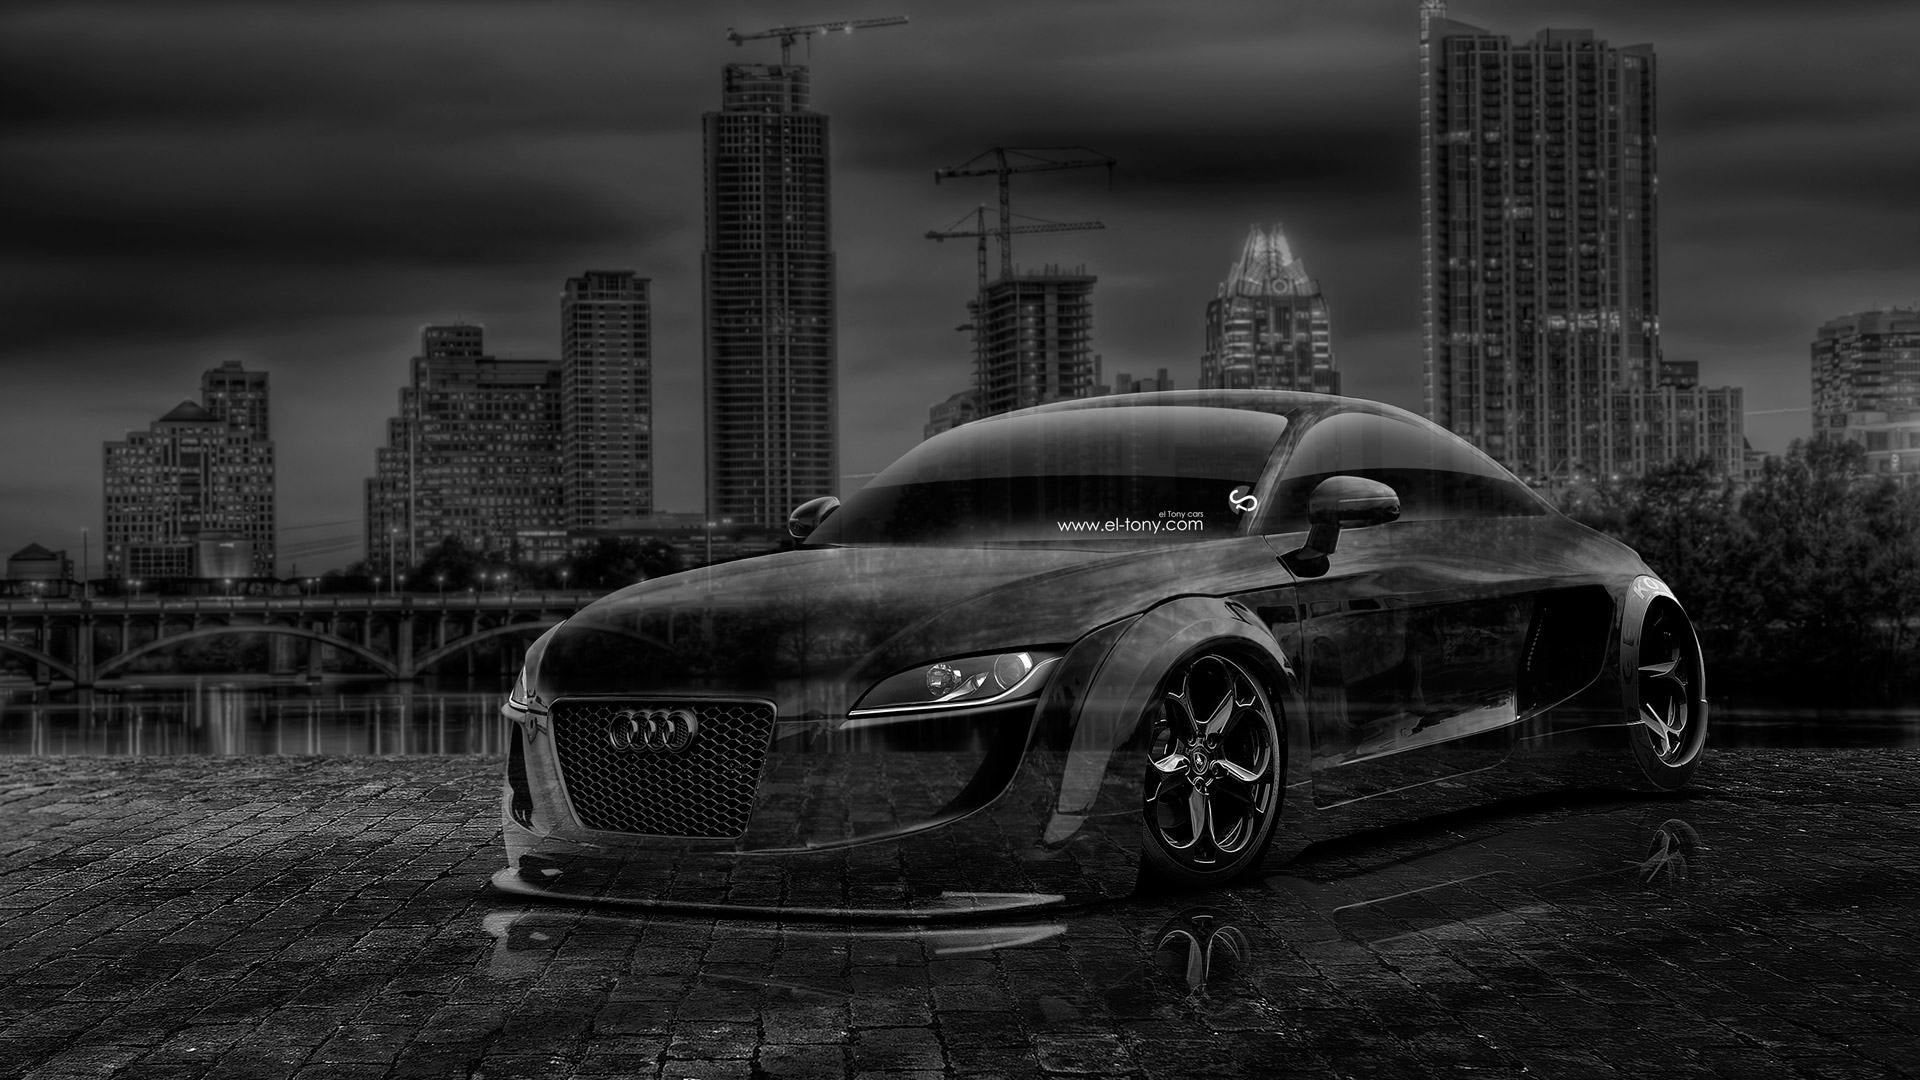 Bon Audi TT Tuning Crystal City Car 2014